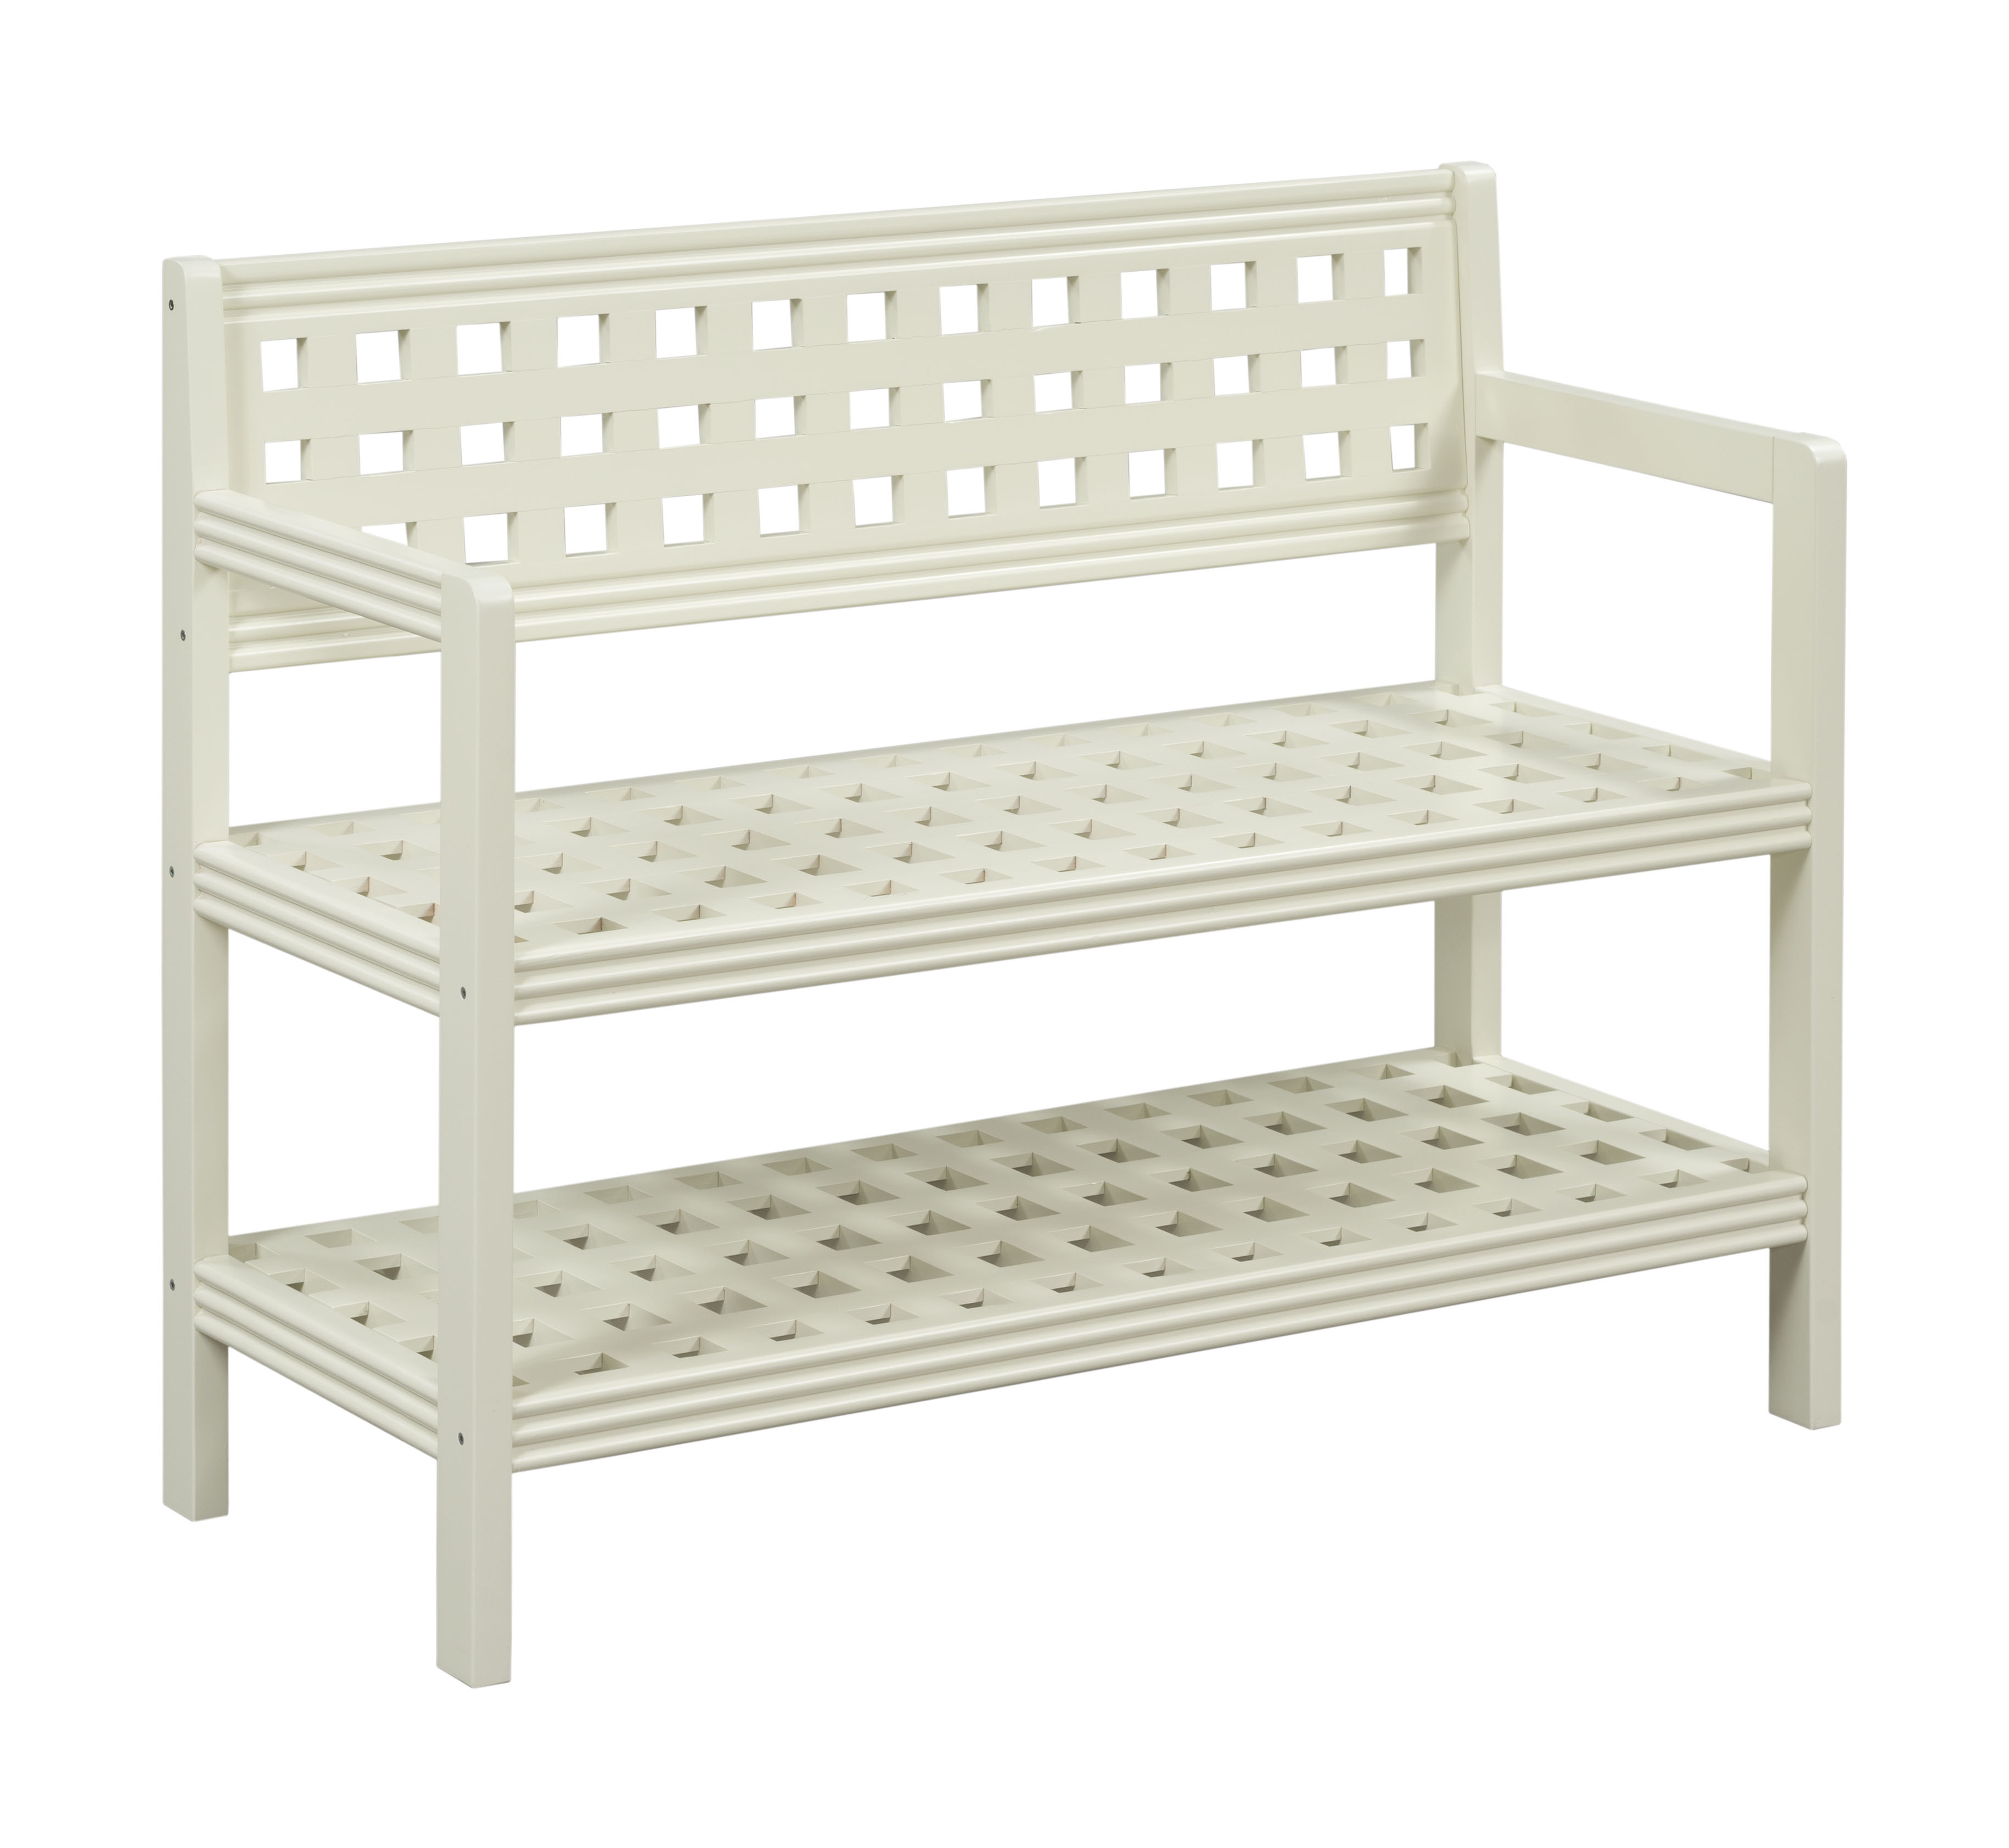 Beaumont Solid Birch Wood Large Bench with Back